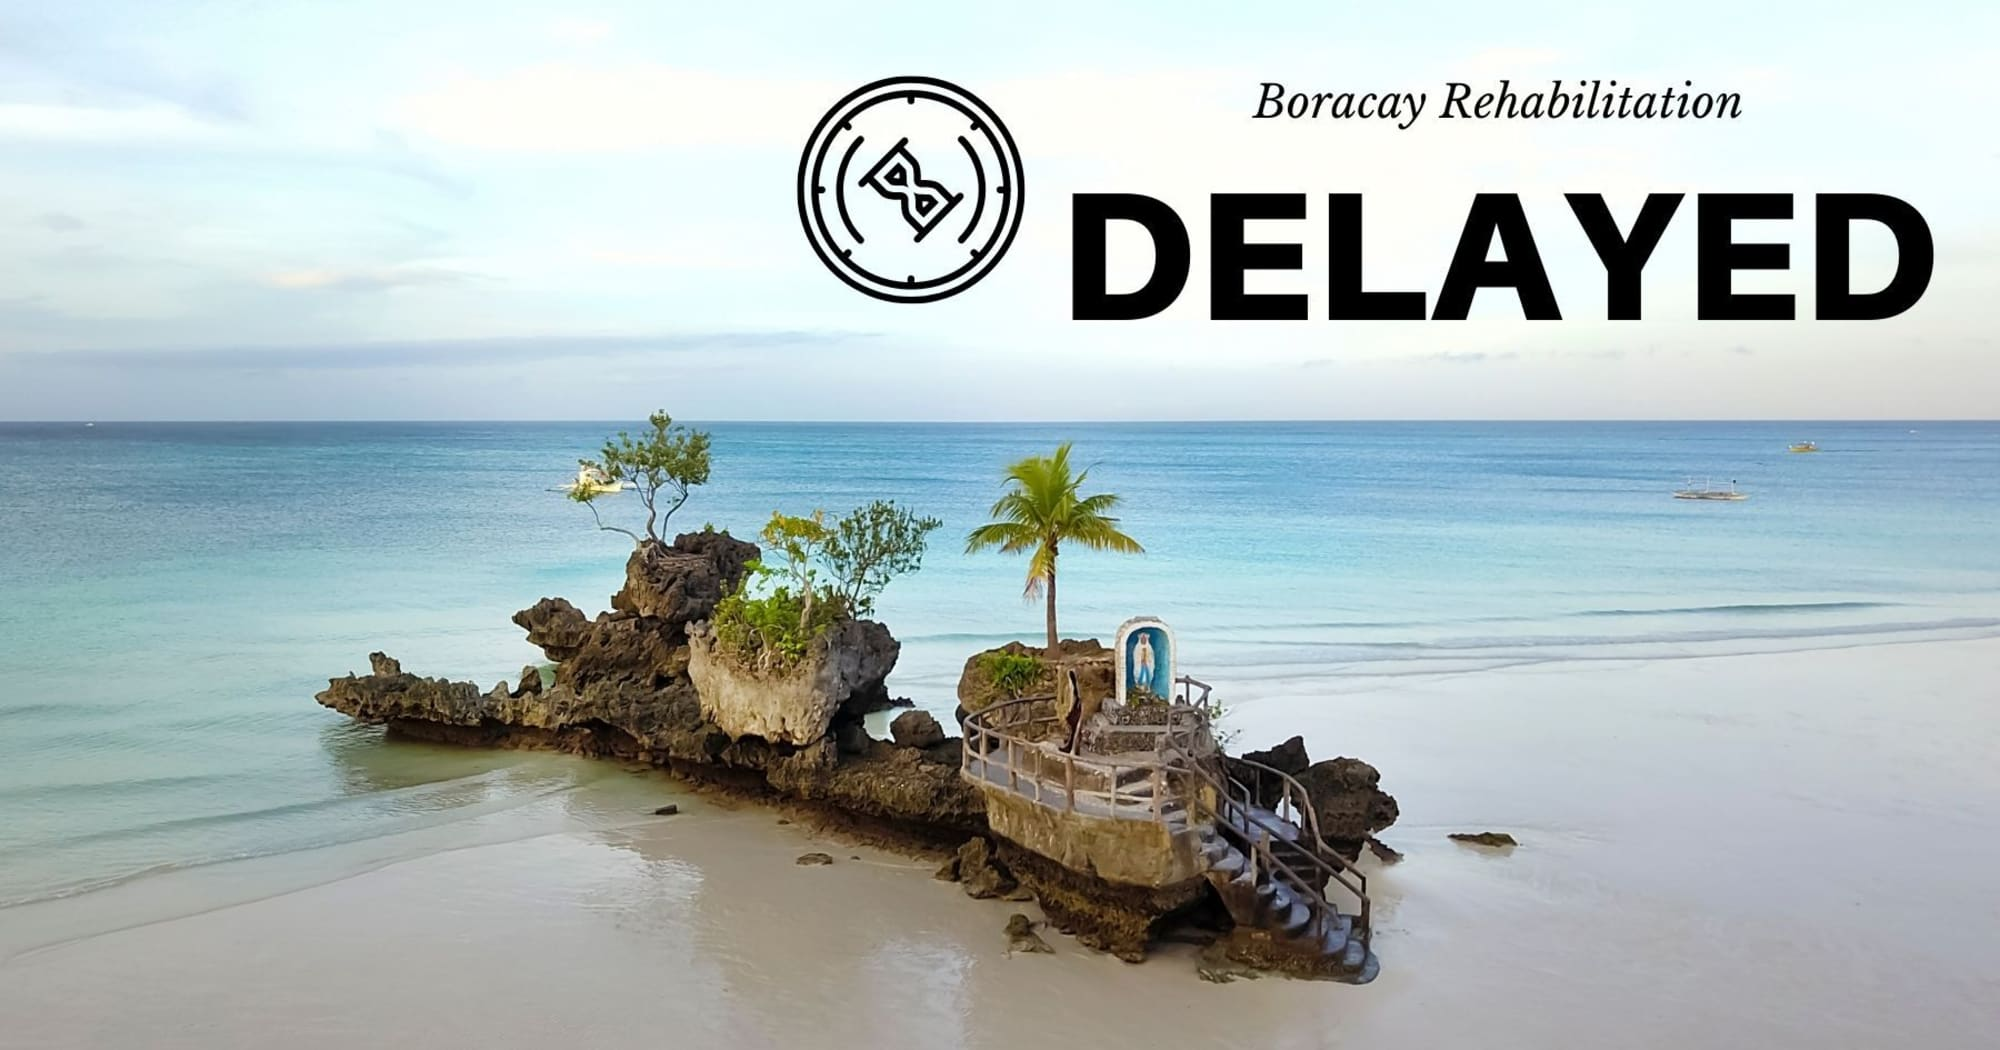 Completion of Rehabilitation in Boracay Island will be delayed - DENR